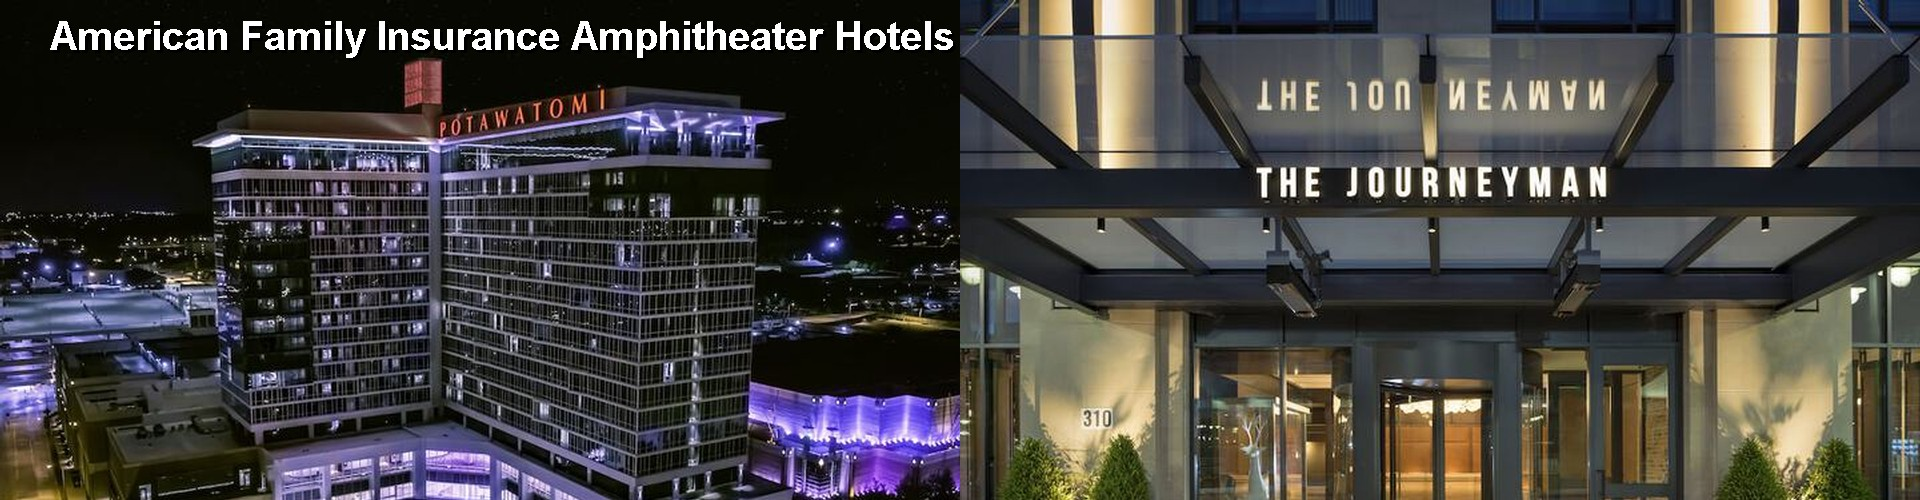 5 Best Hotels near American Family Insurance Amphitheater